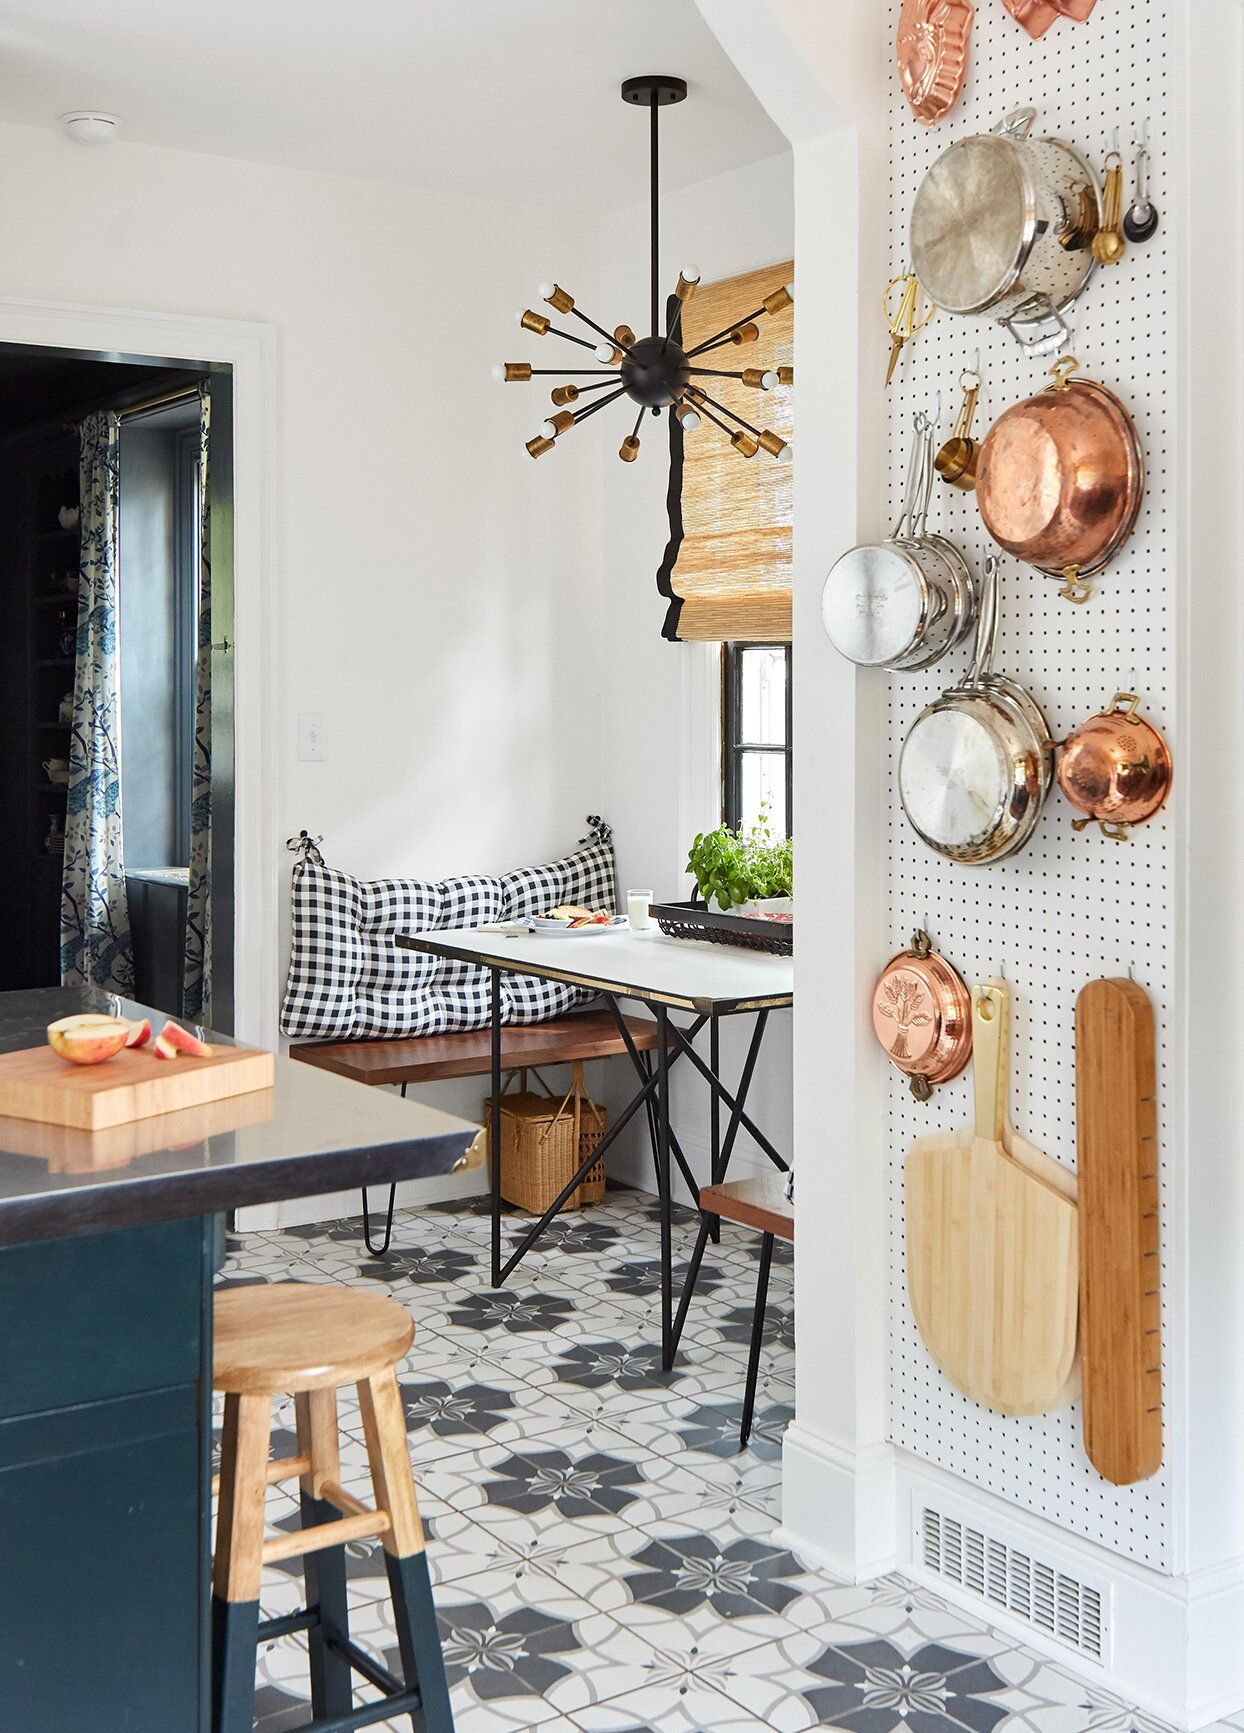 31 Creative Ways to Store Dishes and Utensils That Go Beyond Cabinetry